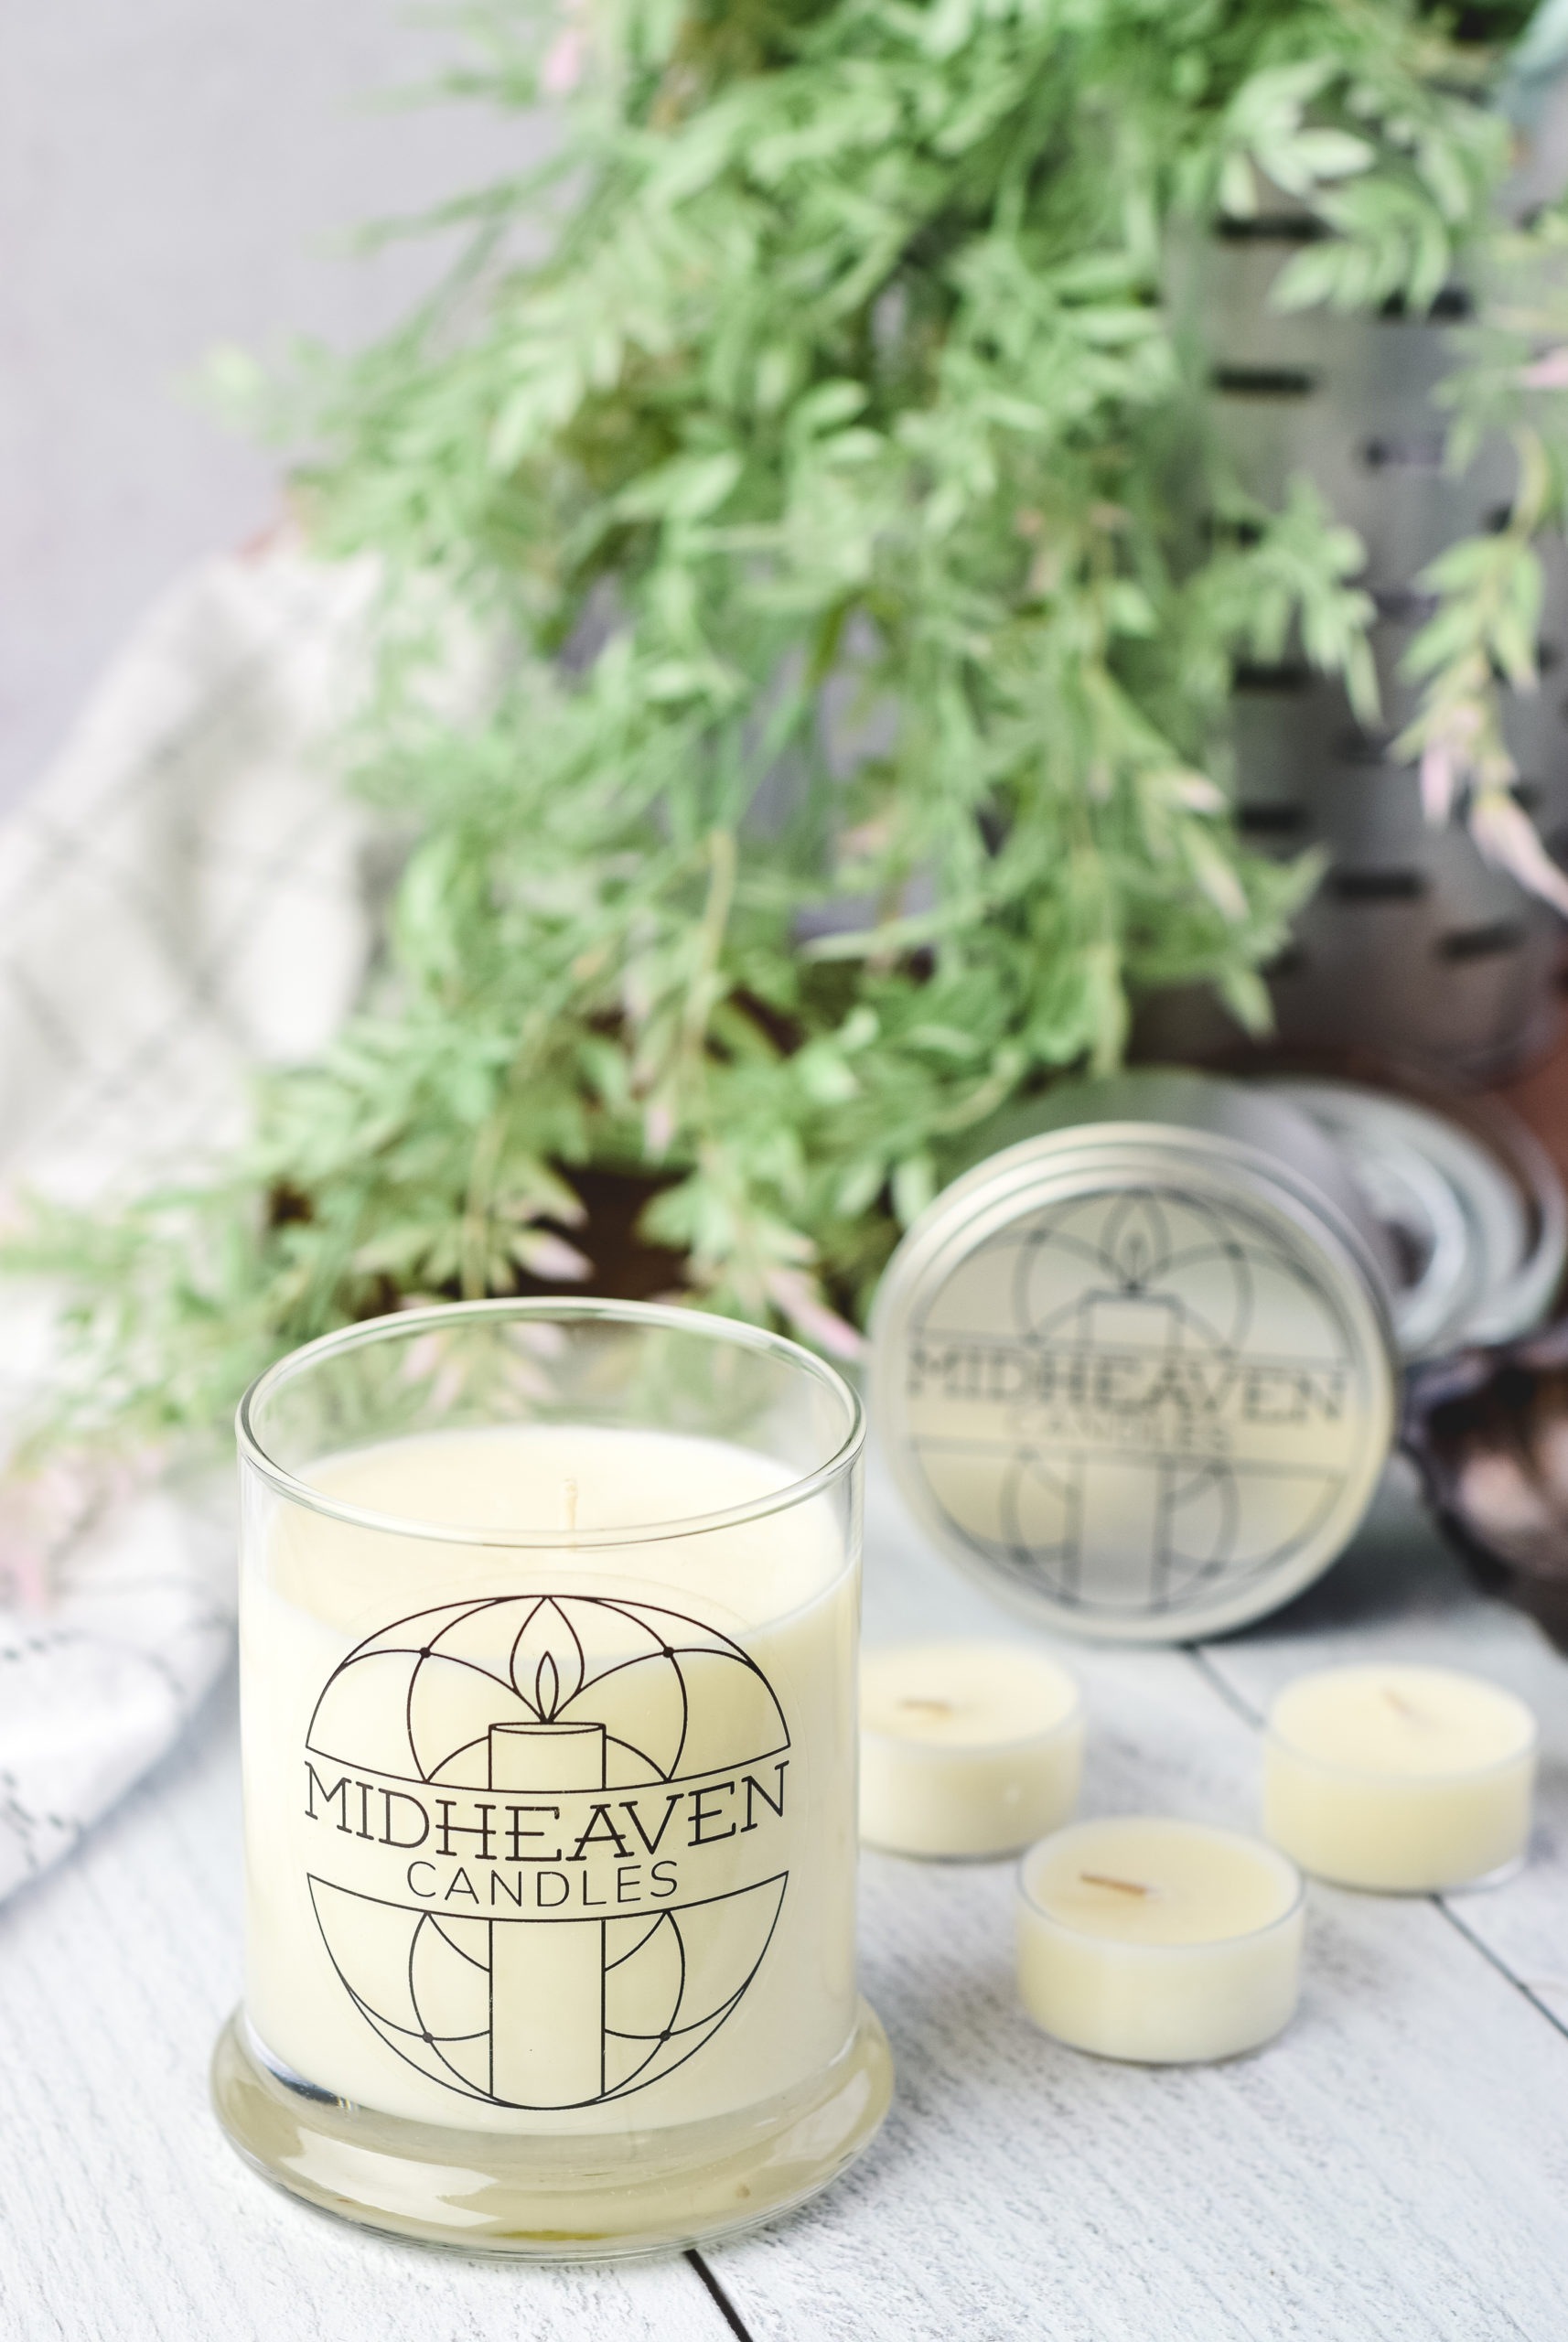 Midheaven Candles